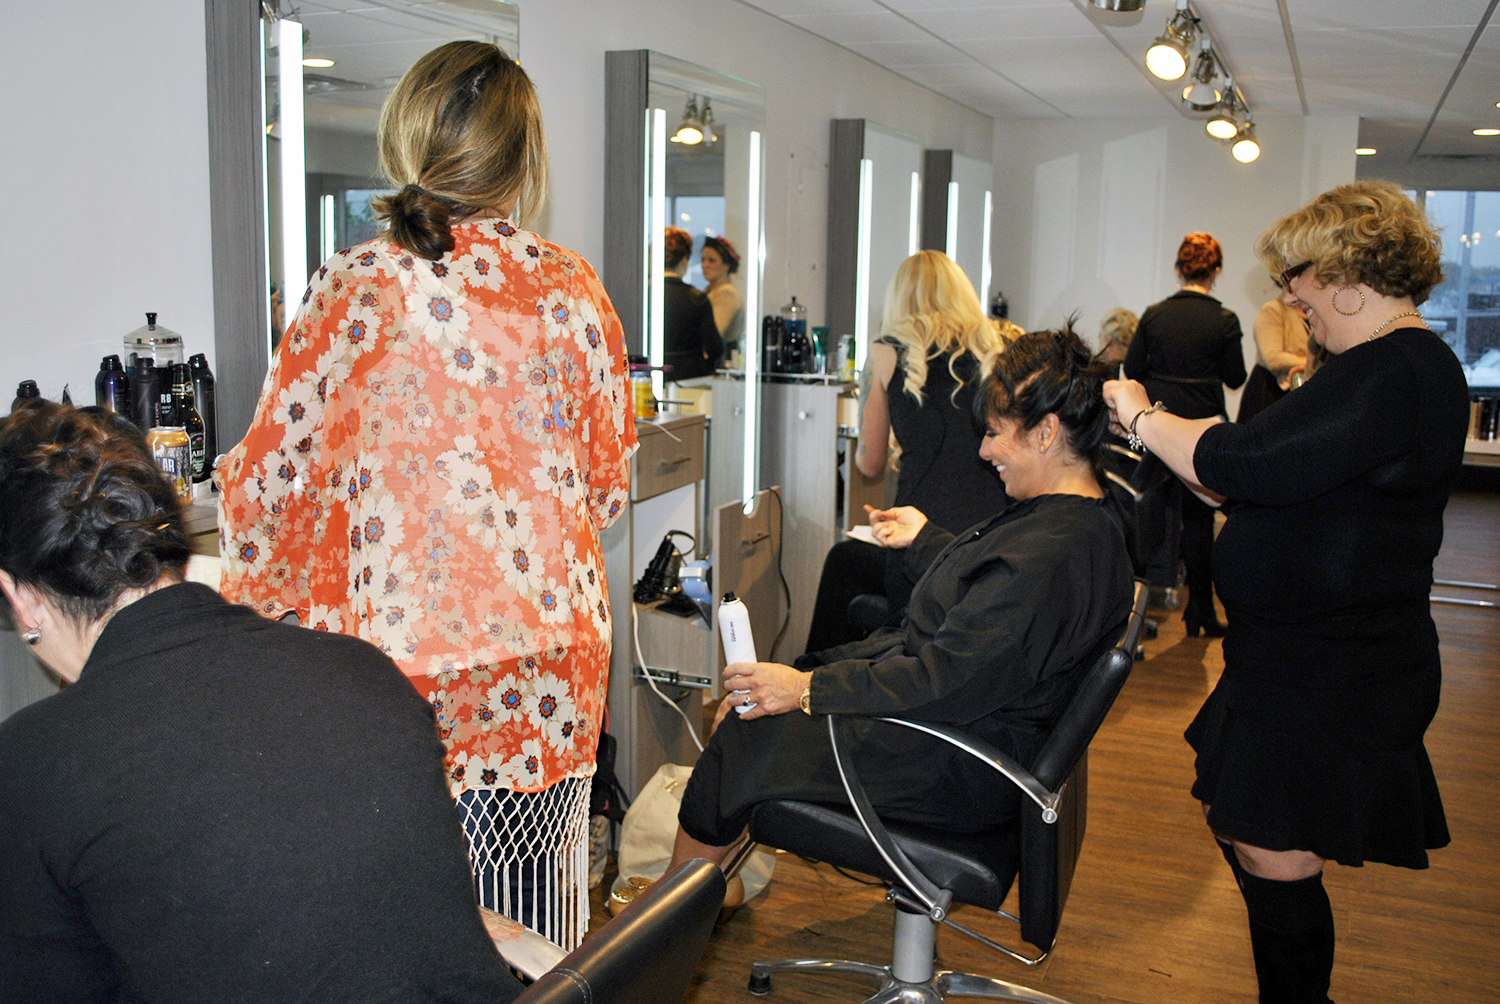 Stylists working on each other's hair at Shu Uemura event at INTERLOCKS